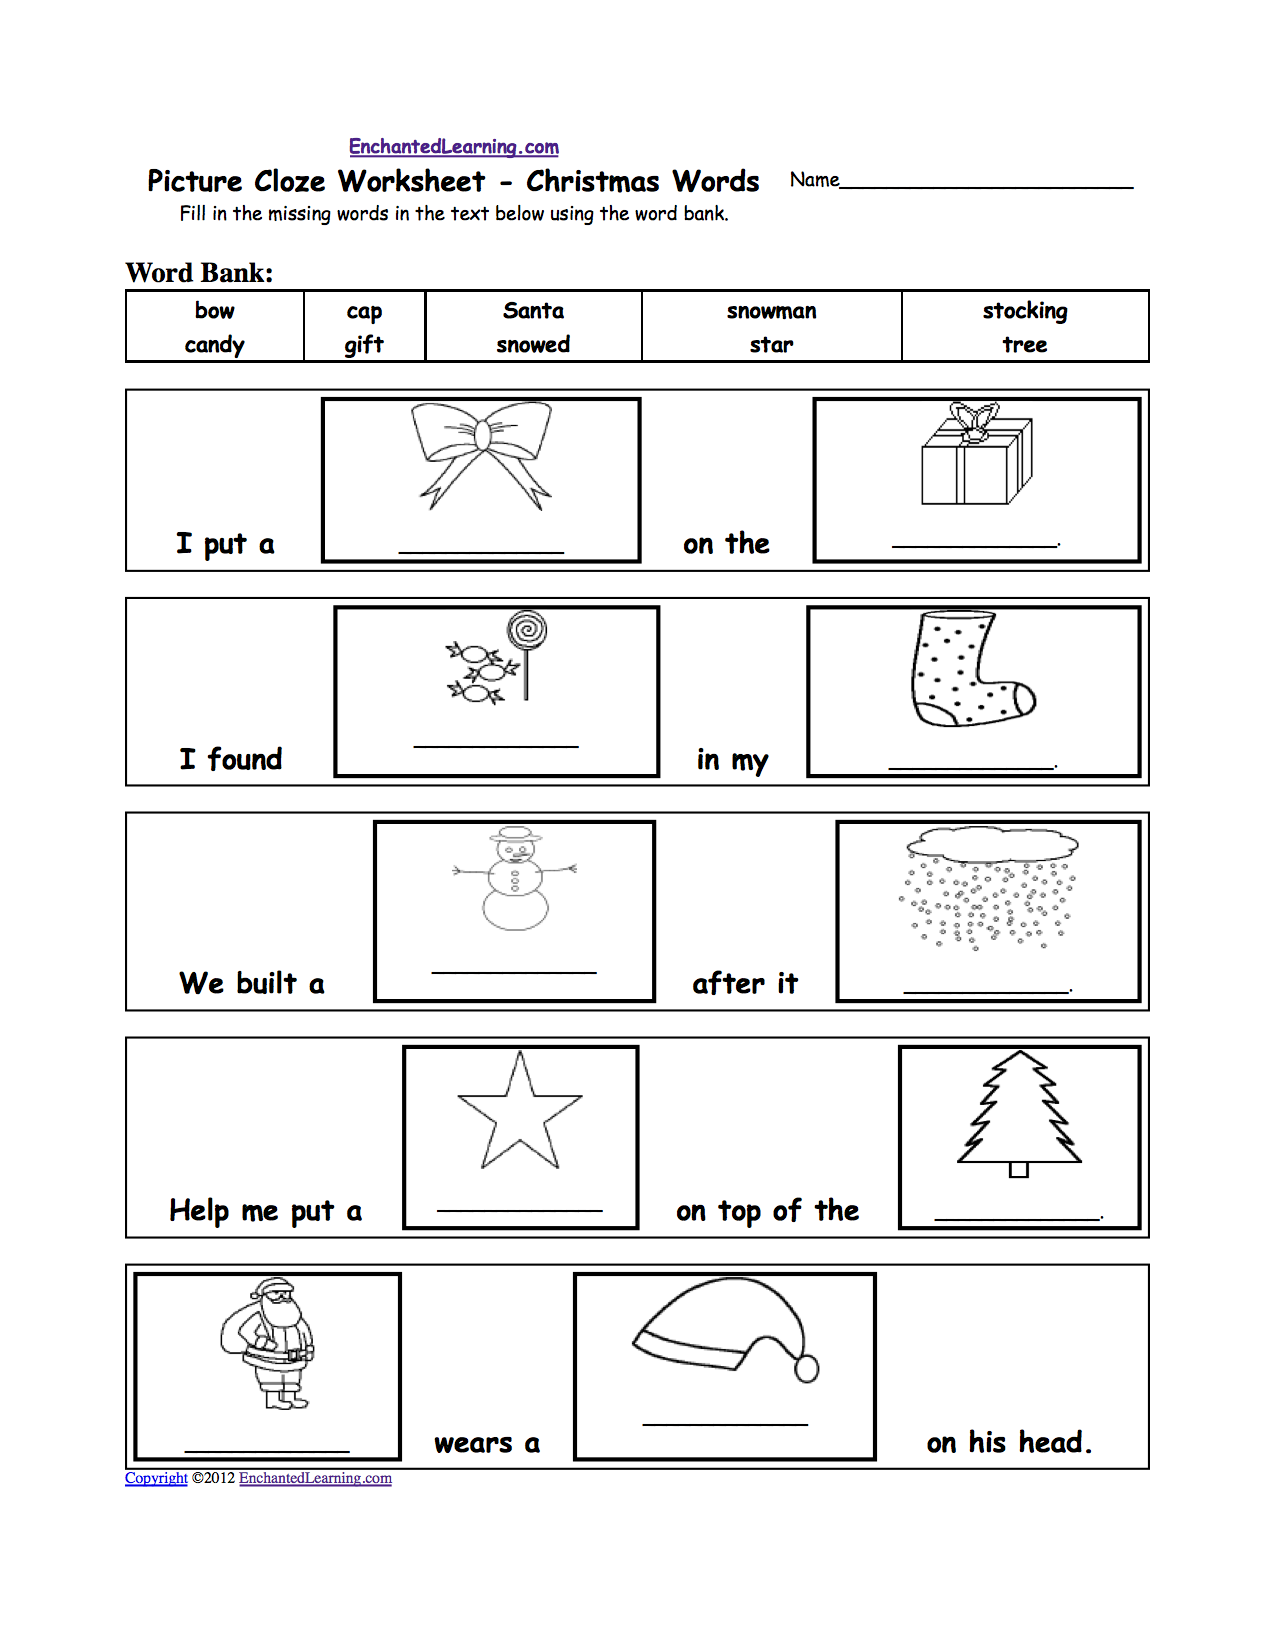 Worksheets Printable Christmas Worksheets For Kids christmas crafts for kids enchantedlearning com or go to the answers cloze picture words printable worksheet